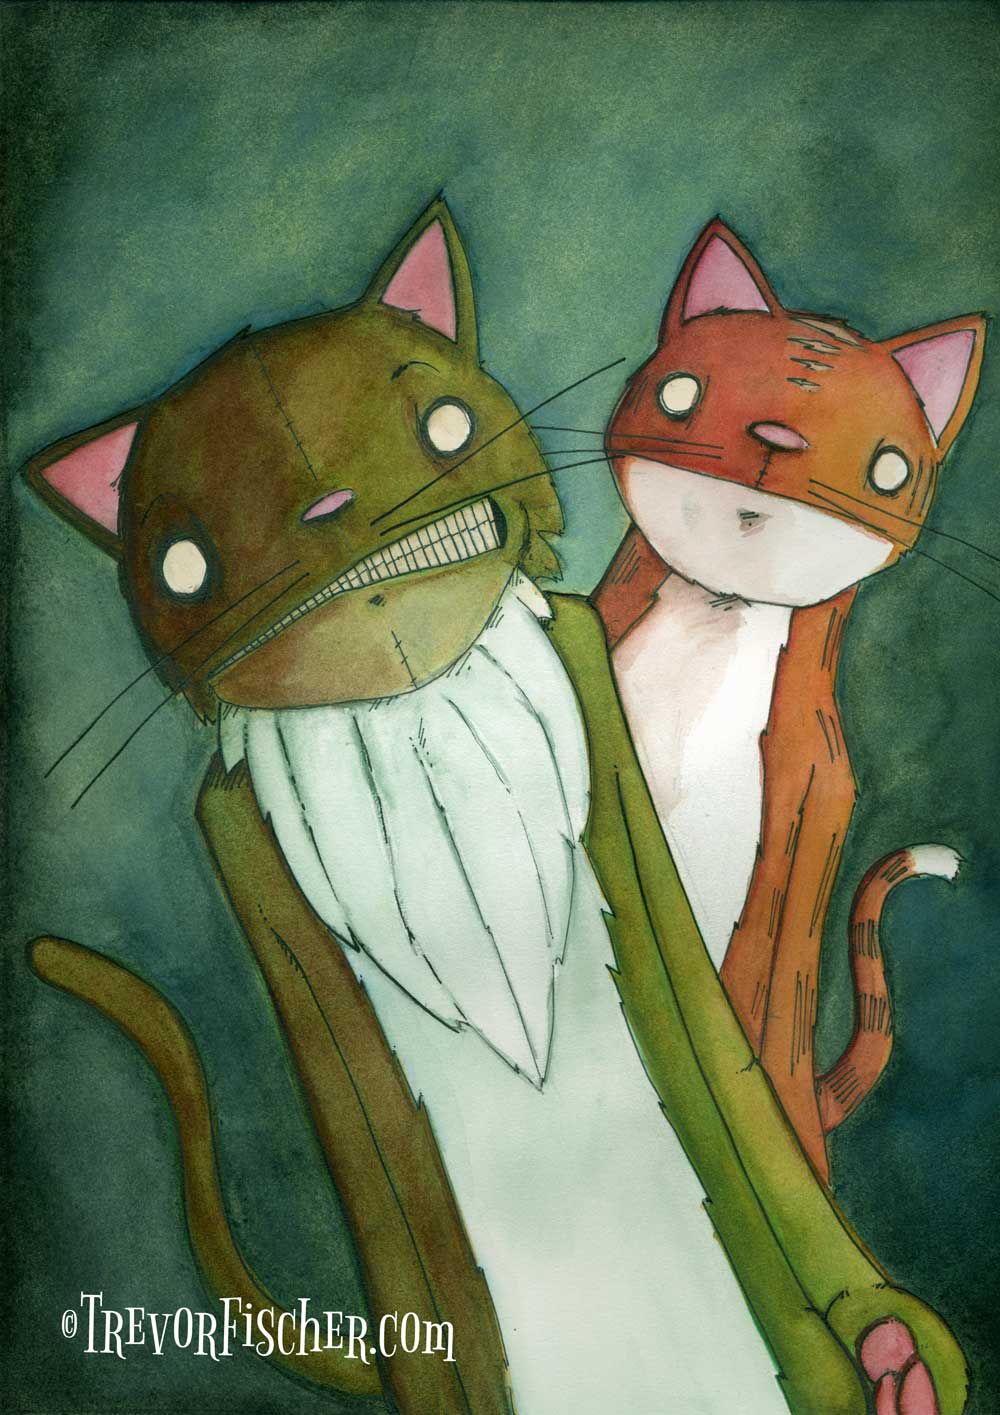 Water colour picture of cats in a goth sort of style